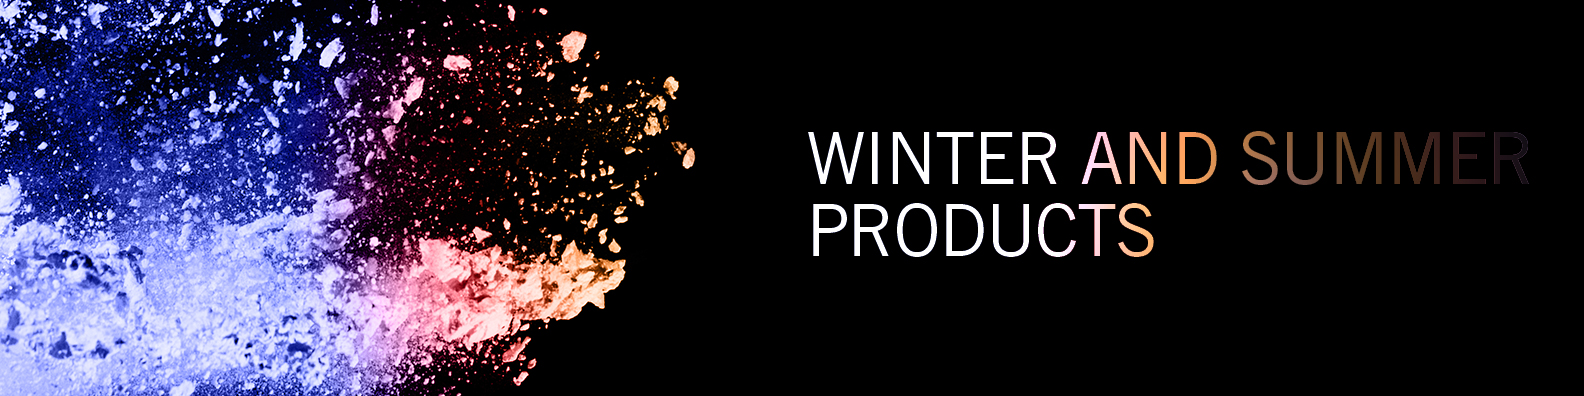 Winter and Summer Products